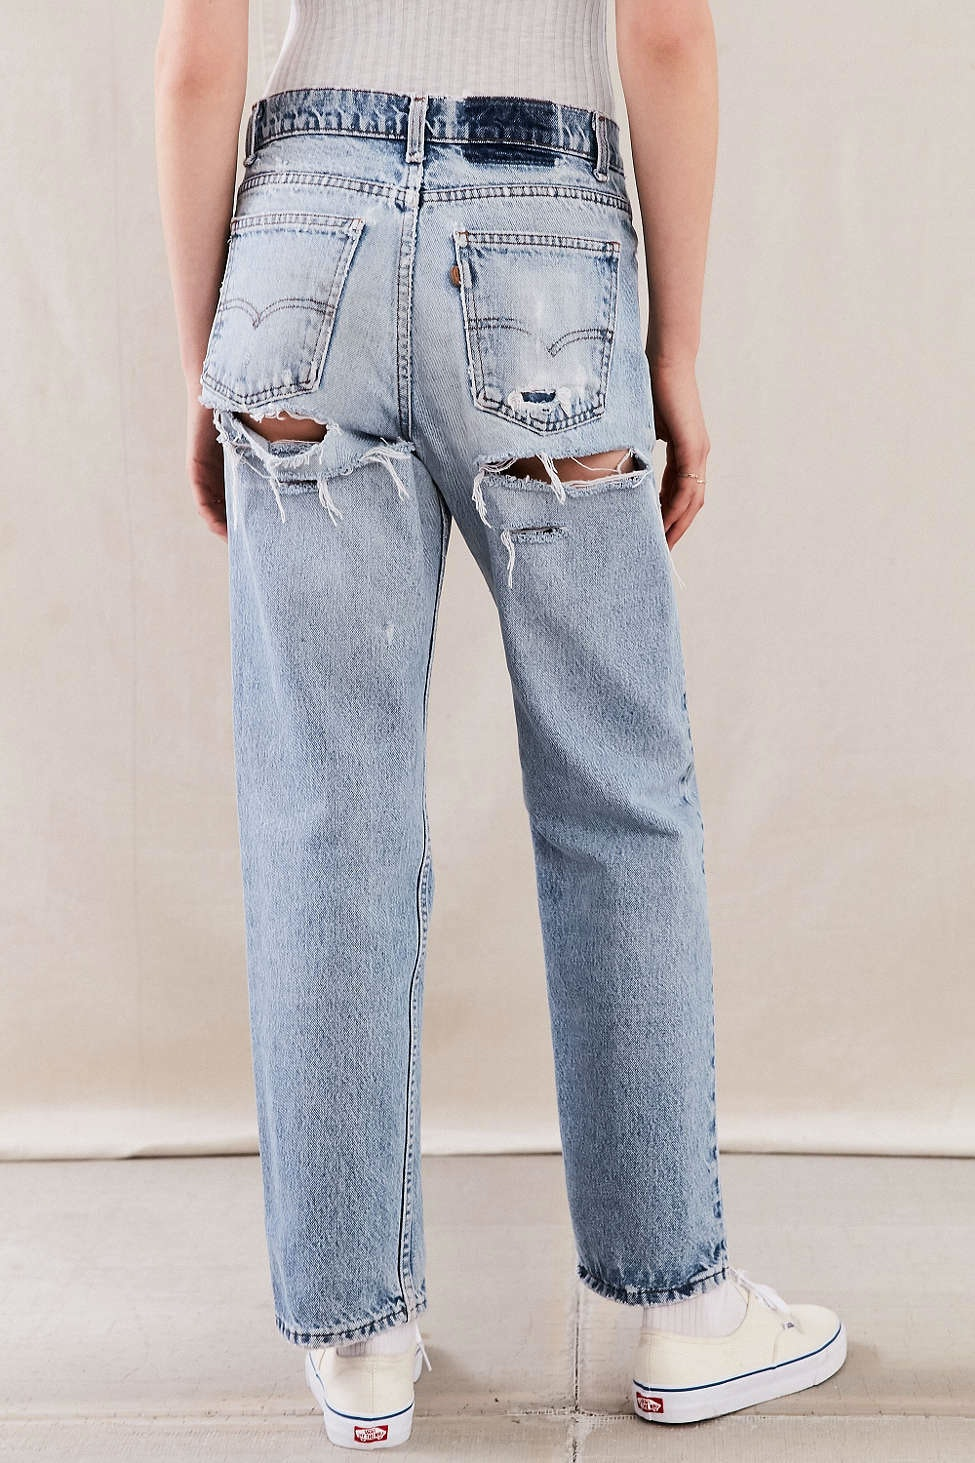 fc1f61d571b Where To Buy Kylie Jenner's Jeans With Holes In The Back For That Sexy Denim  Look — PHOTOS